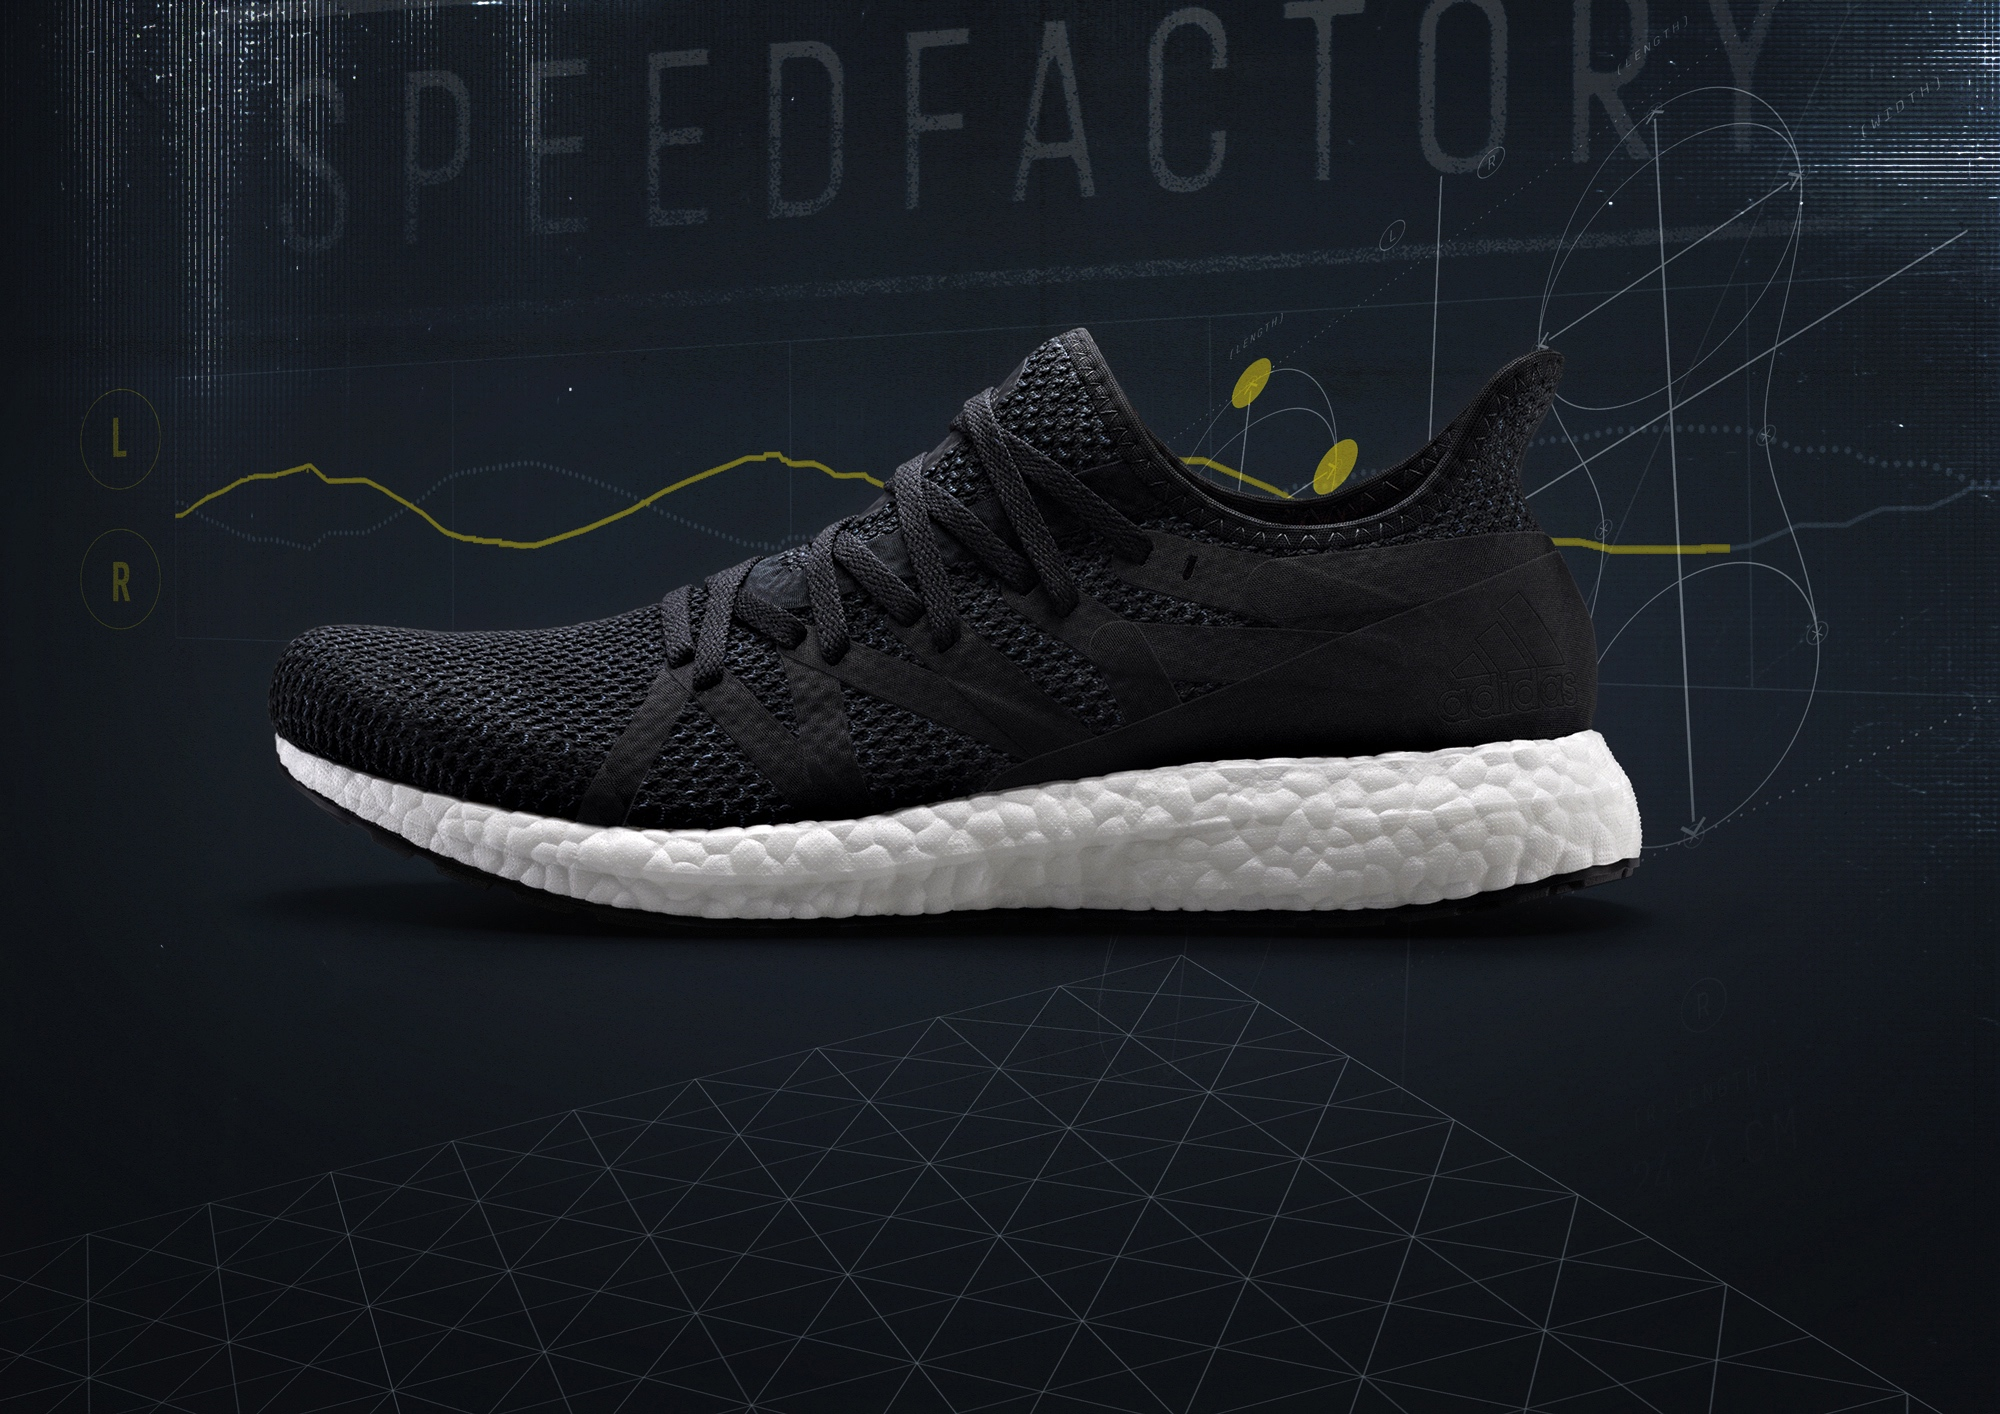 48b1d7c8a42ab The Newest Addition to the adidas 'AM4' Series is Here - WearTesters